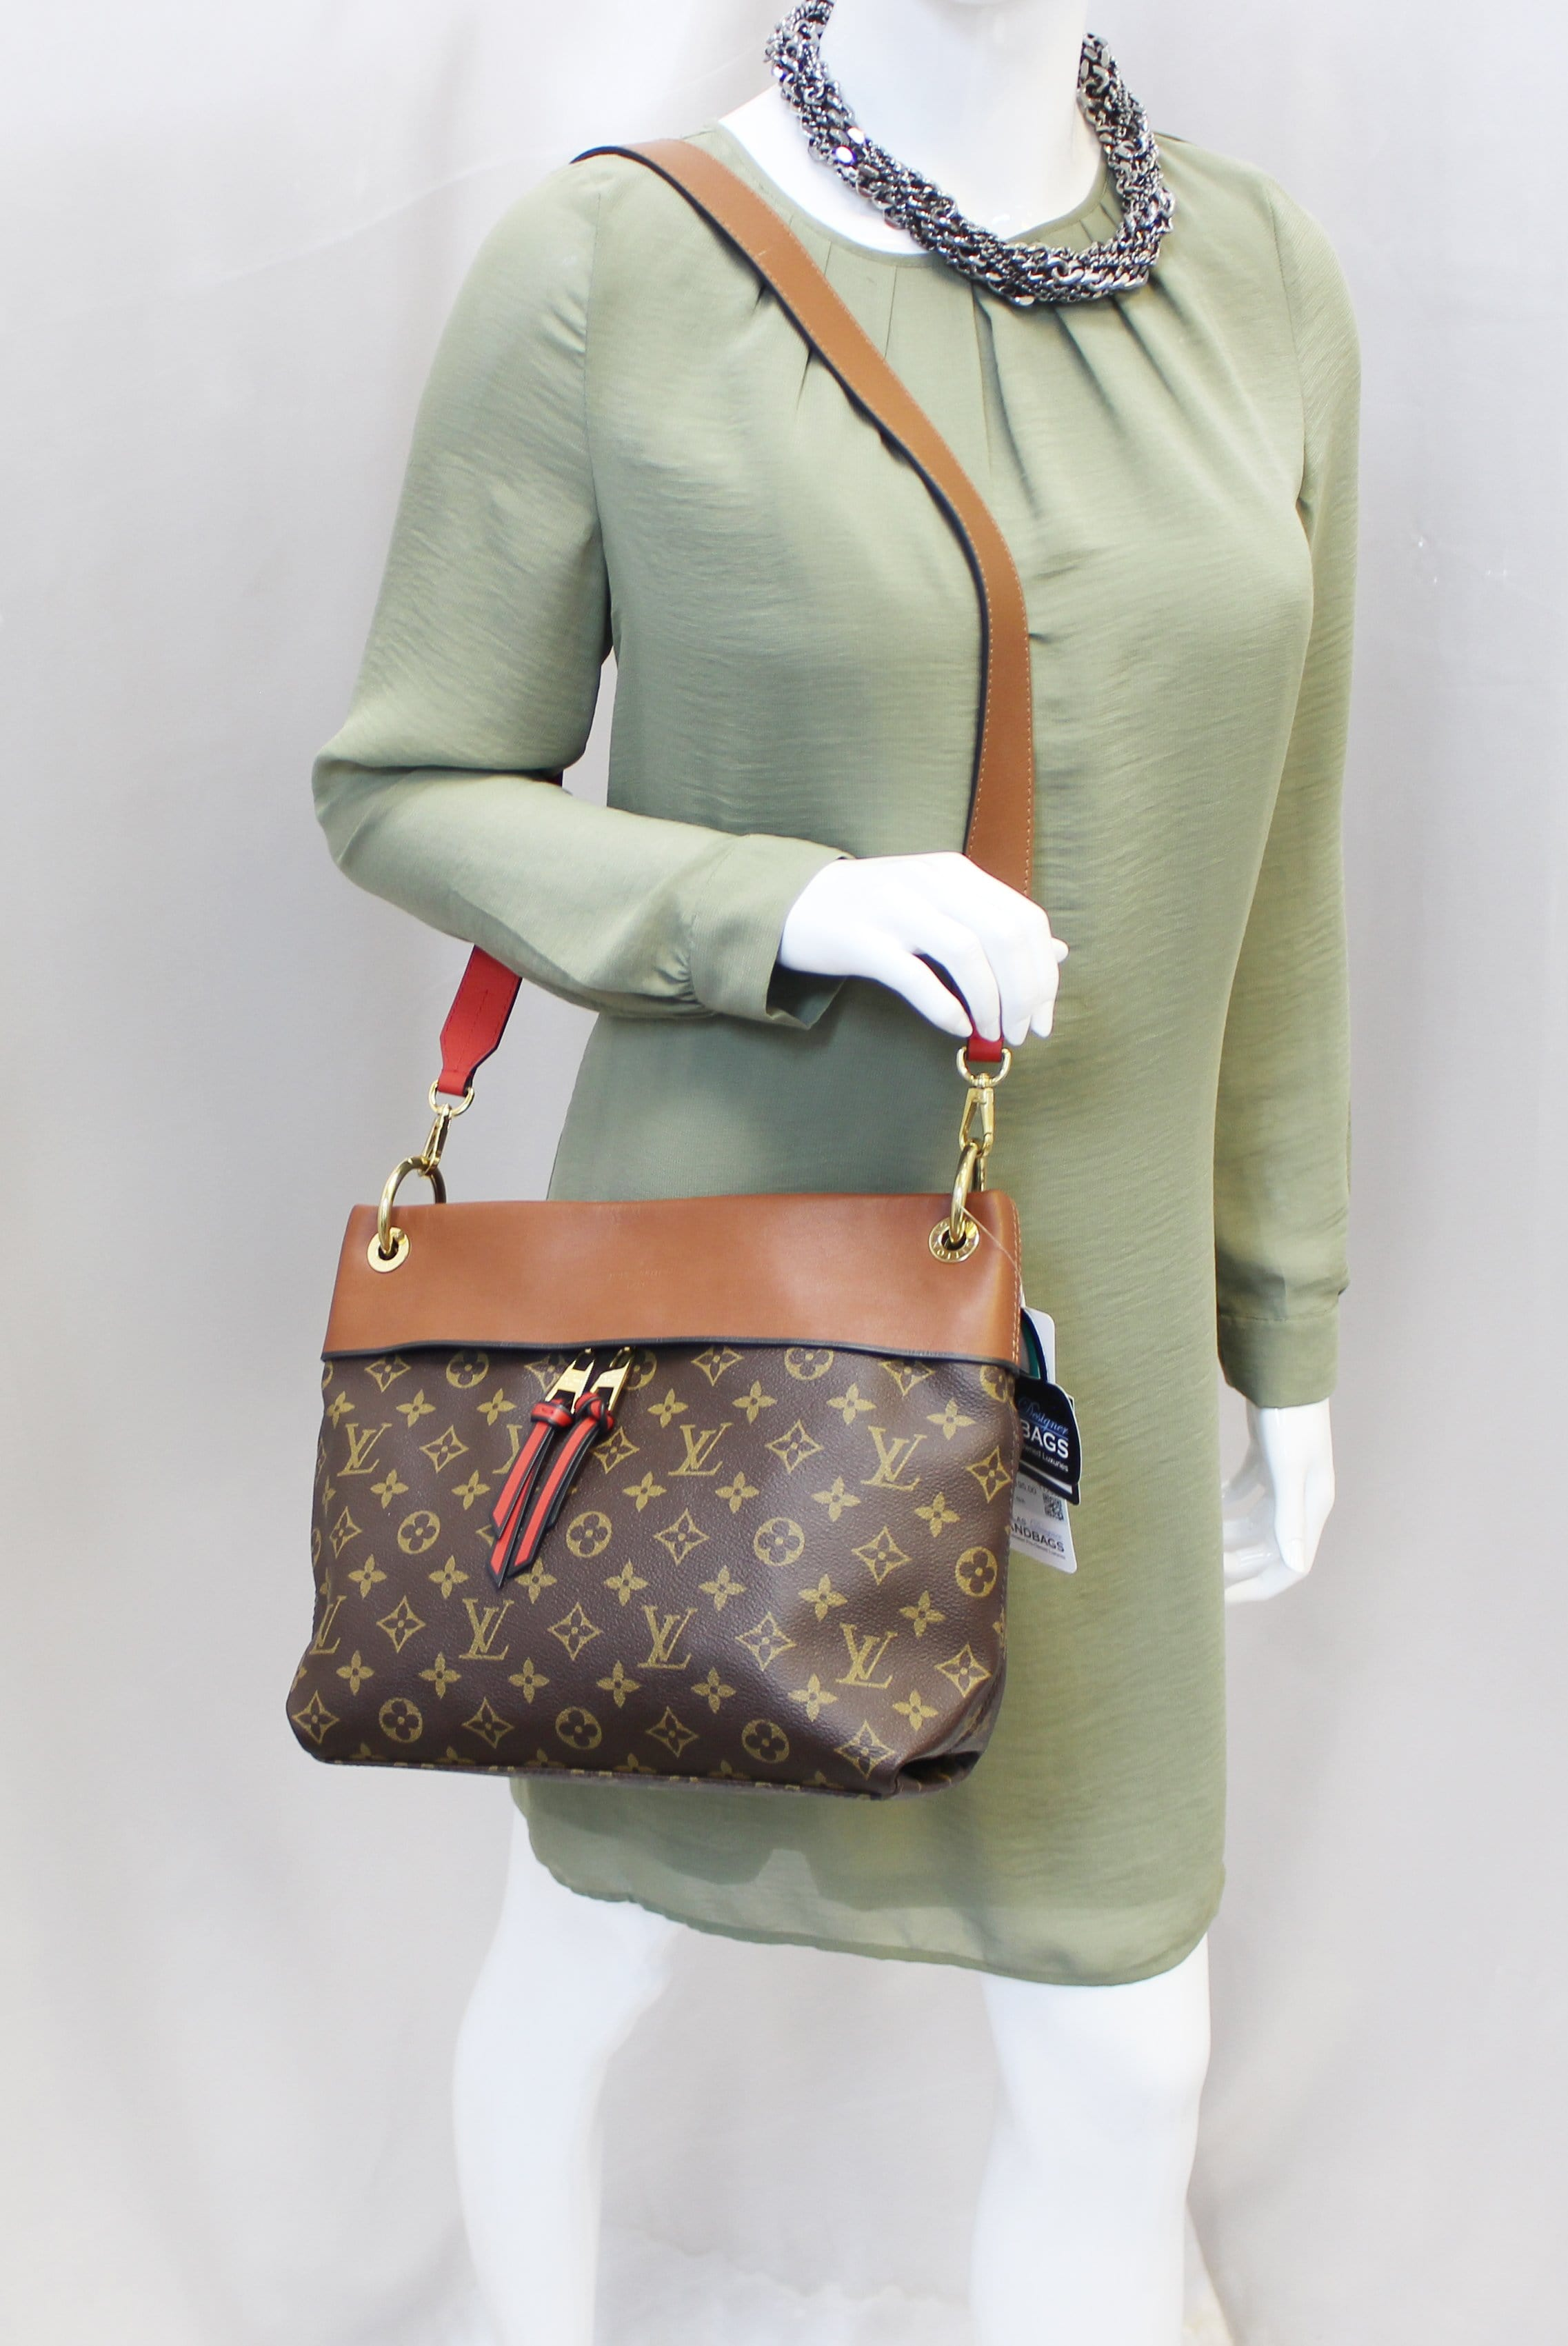 5c8eb07d98d2 LOUIS VUITTON Caramel Monogram Canvas Tuileries Besace Shoulder Bag